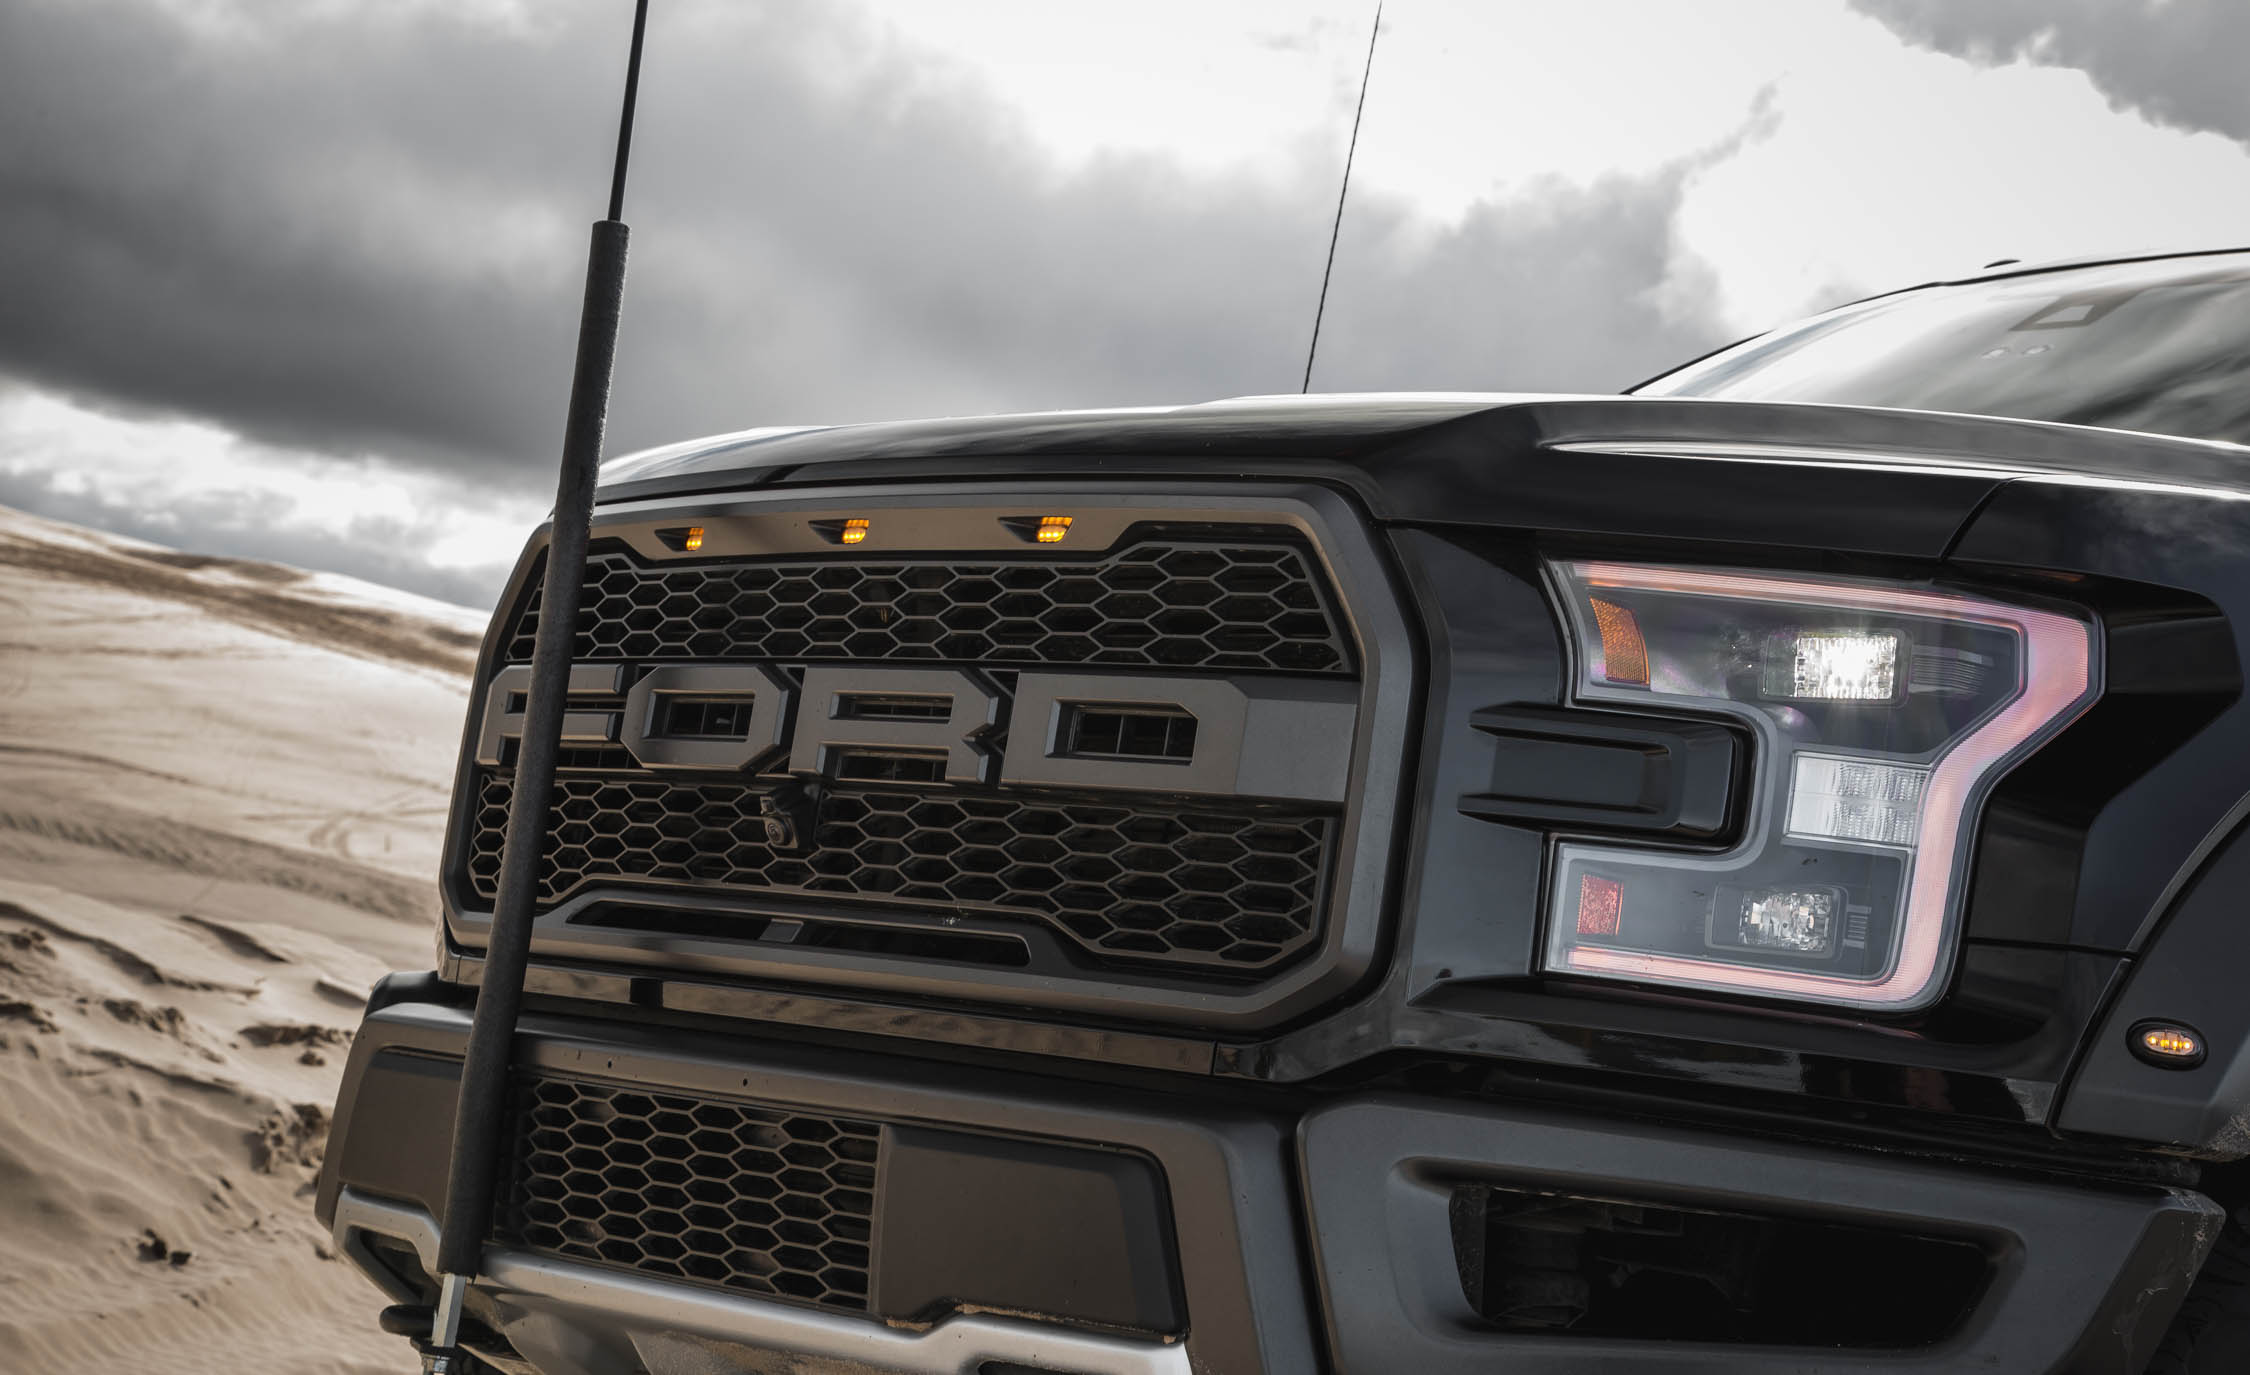 2017 Ford F 150 Raptor SuperCrew Exterior View Grille (Photo 23 of 47)